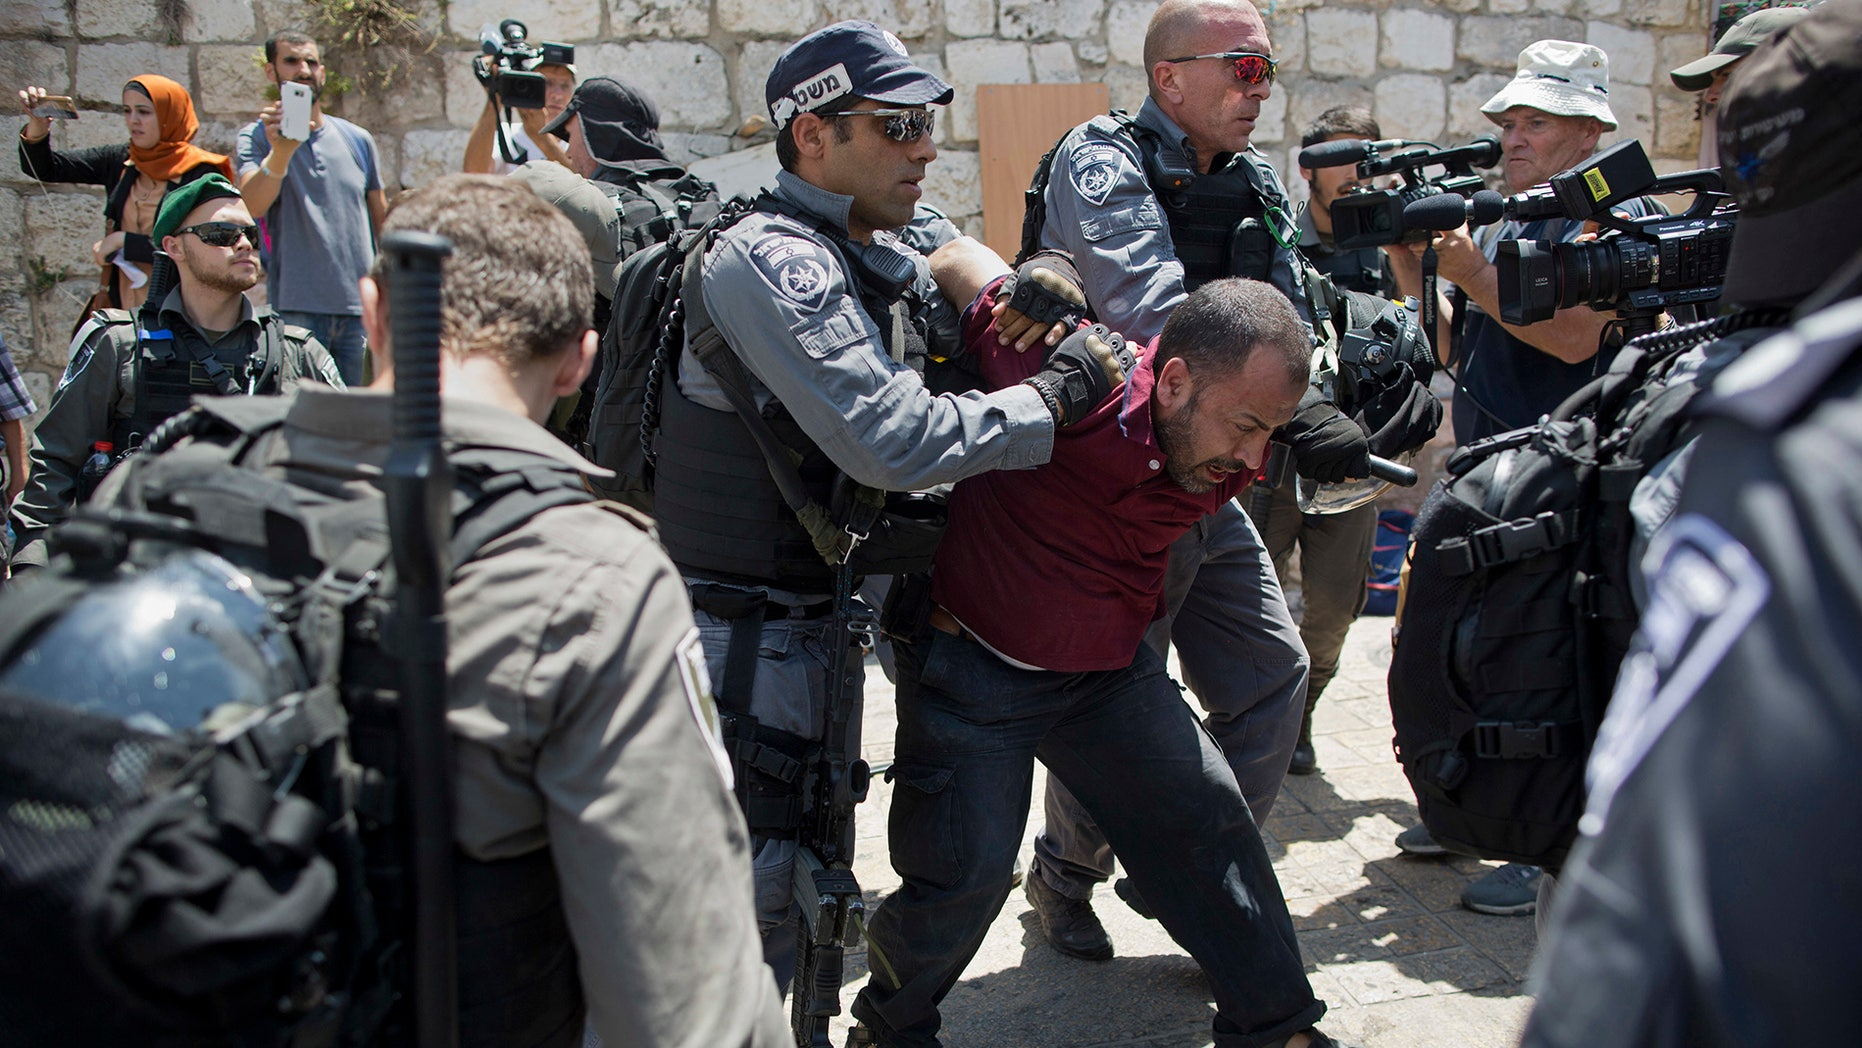 Israeli police officers detain a Palestinian man outside the Lion's Gate, following an appeal from clerics to pray in the streets instead of the Al Aqsa Mosque compound, in Jerusalem's Old City, Wednesday, July 19, 2017.